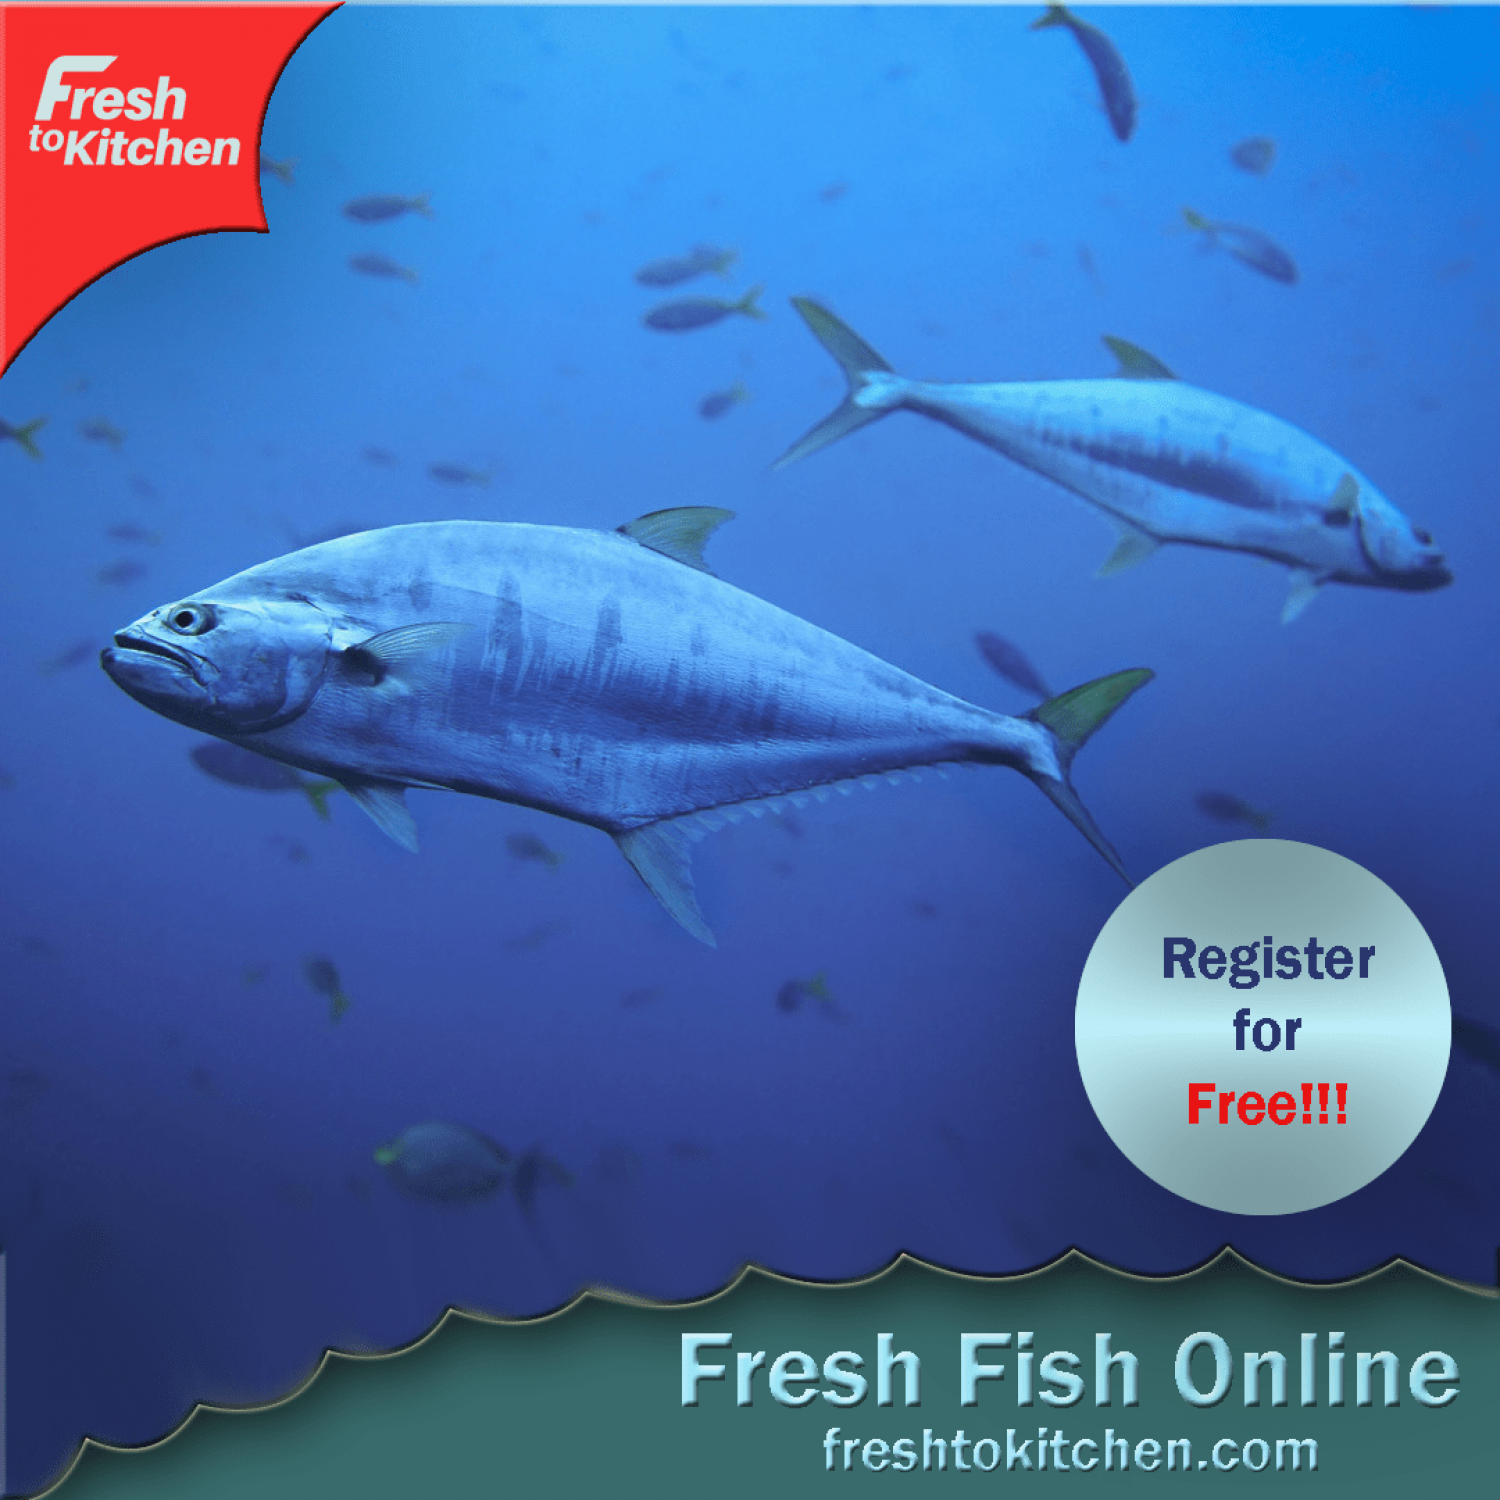 Fresh To Kitchen: Order Fresh Fish Online Kochi, Kerala Infographic